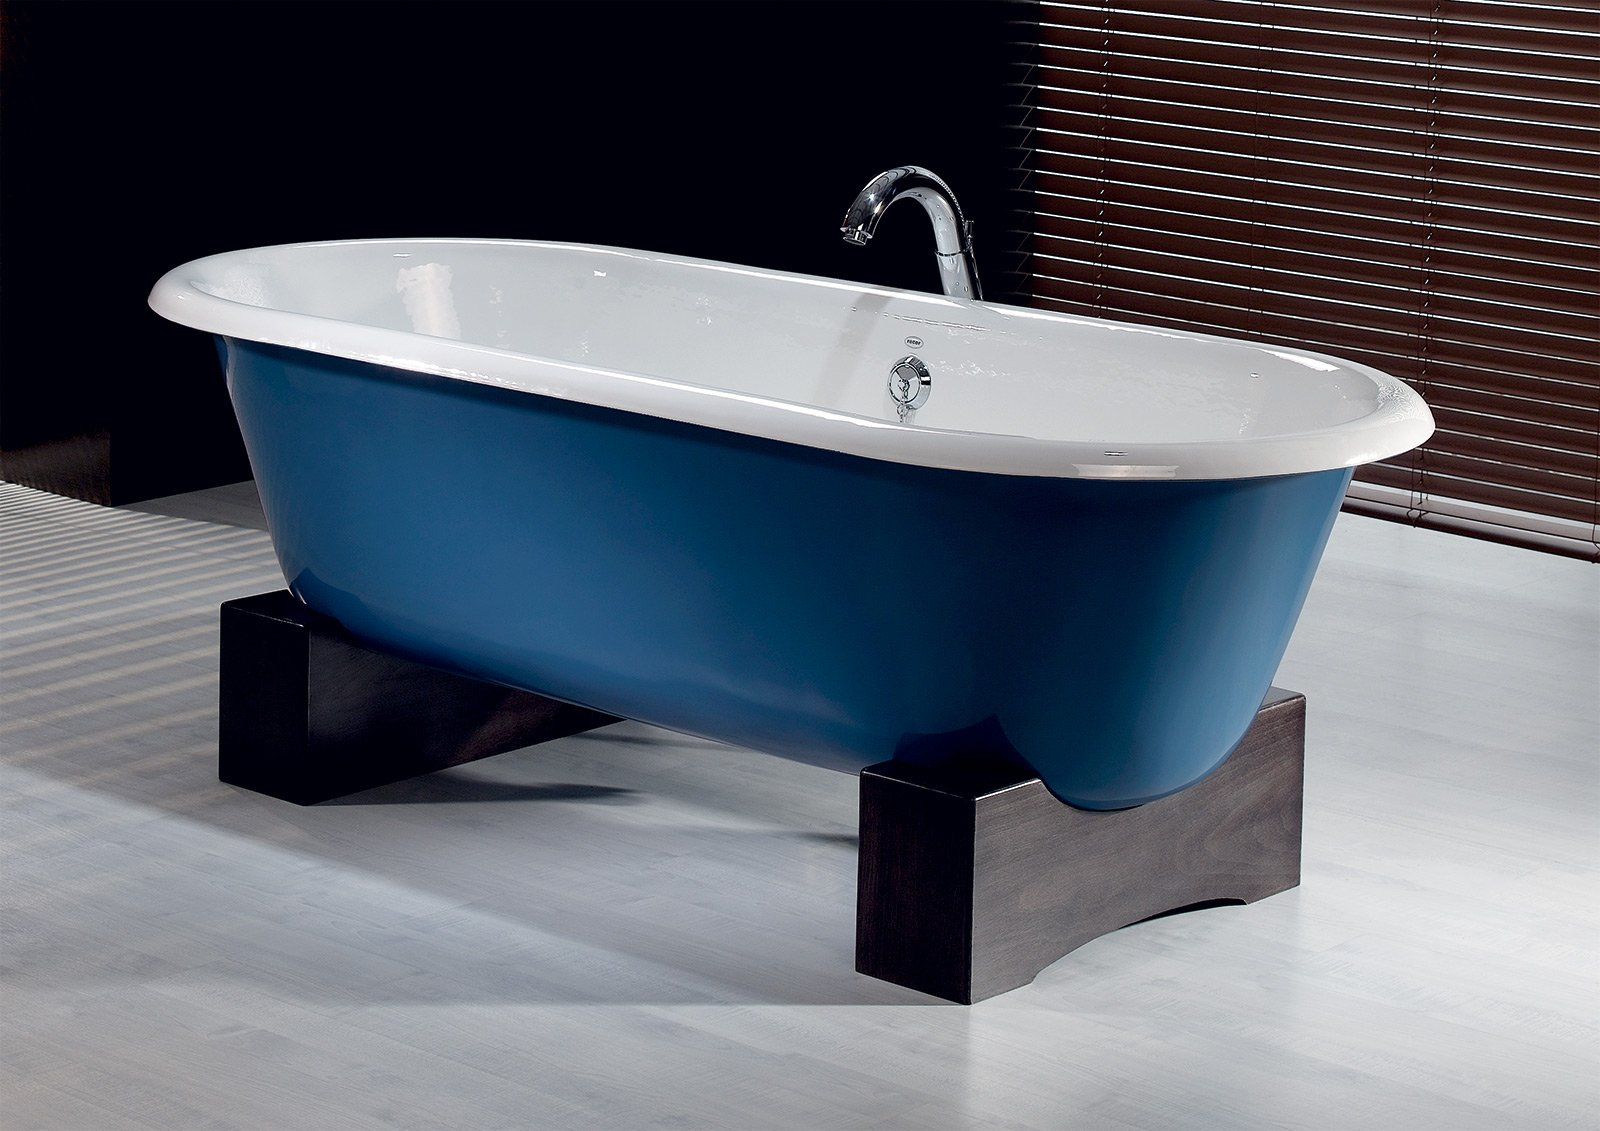 Cast Iron Bathtub. Bathtub Home Depot Cast Iron Bathtub Home Depot ...